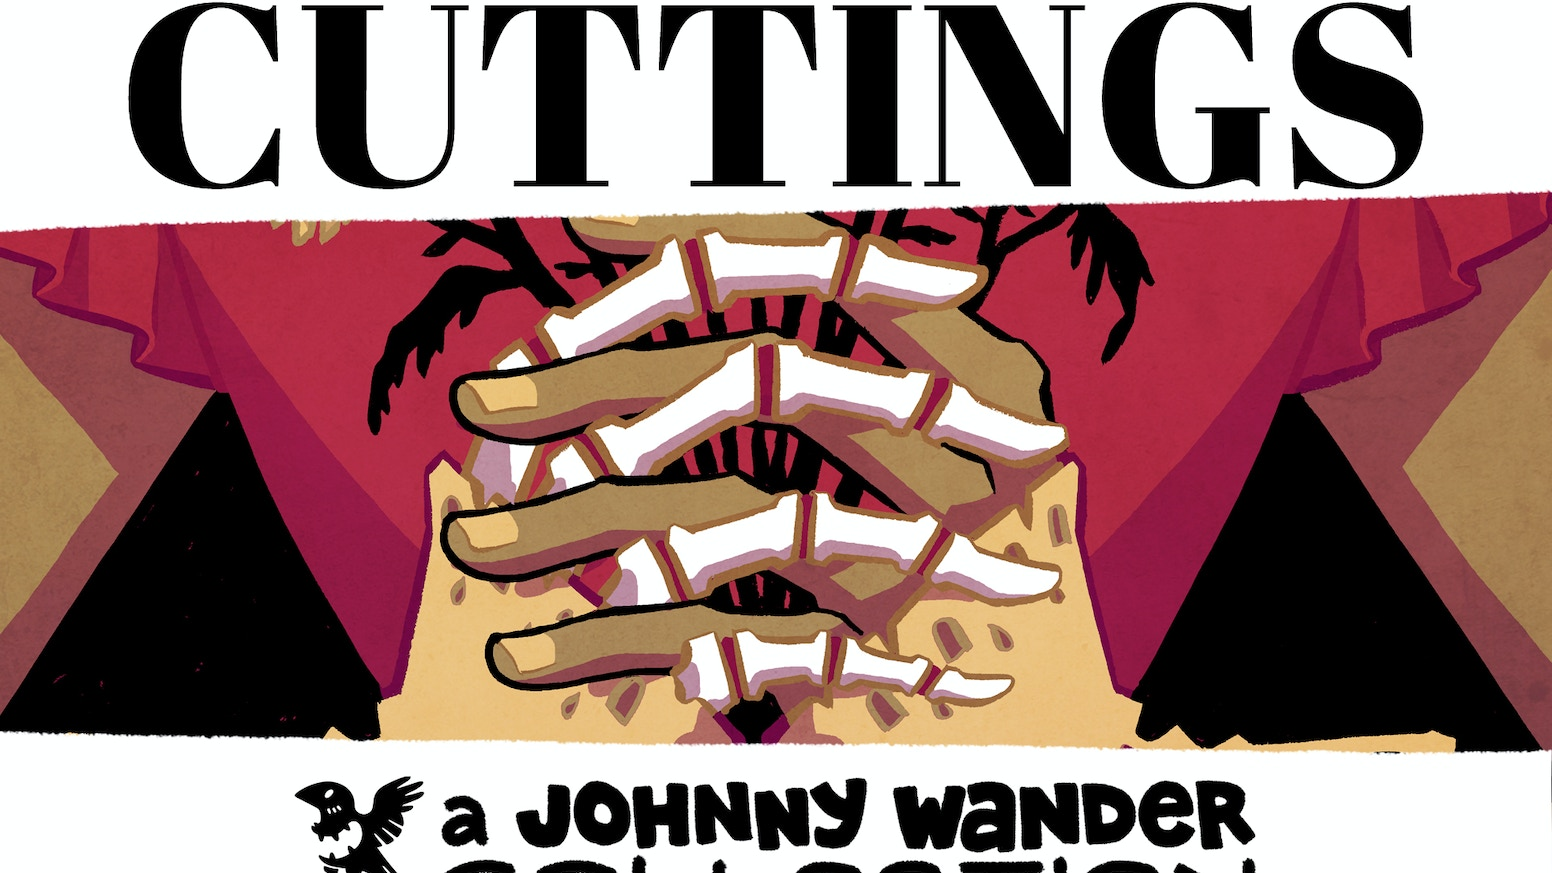 CUTTINGS is a striking new hardcover collection that includes color fiction Johnny Wander shorts & never before seen art from Yuko Ota!